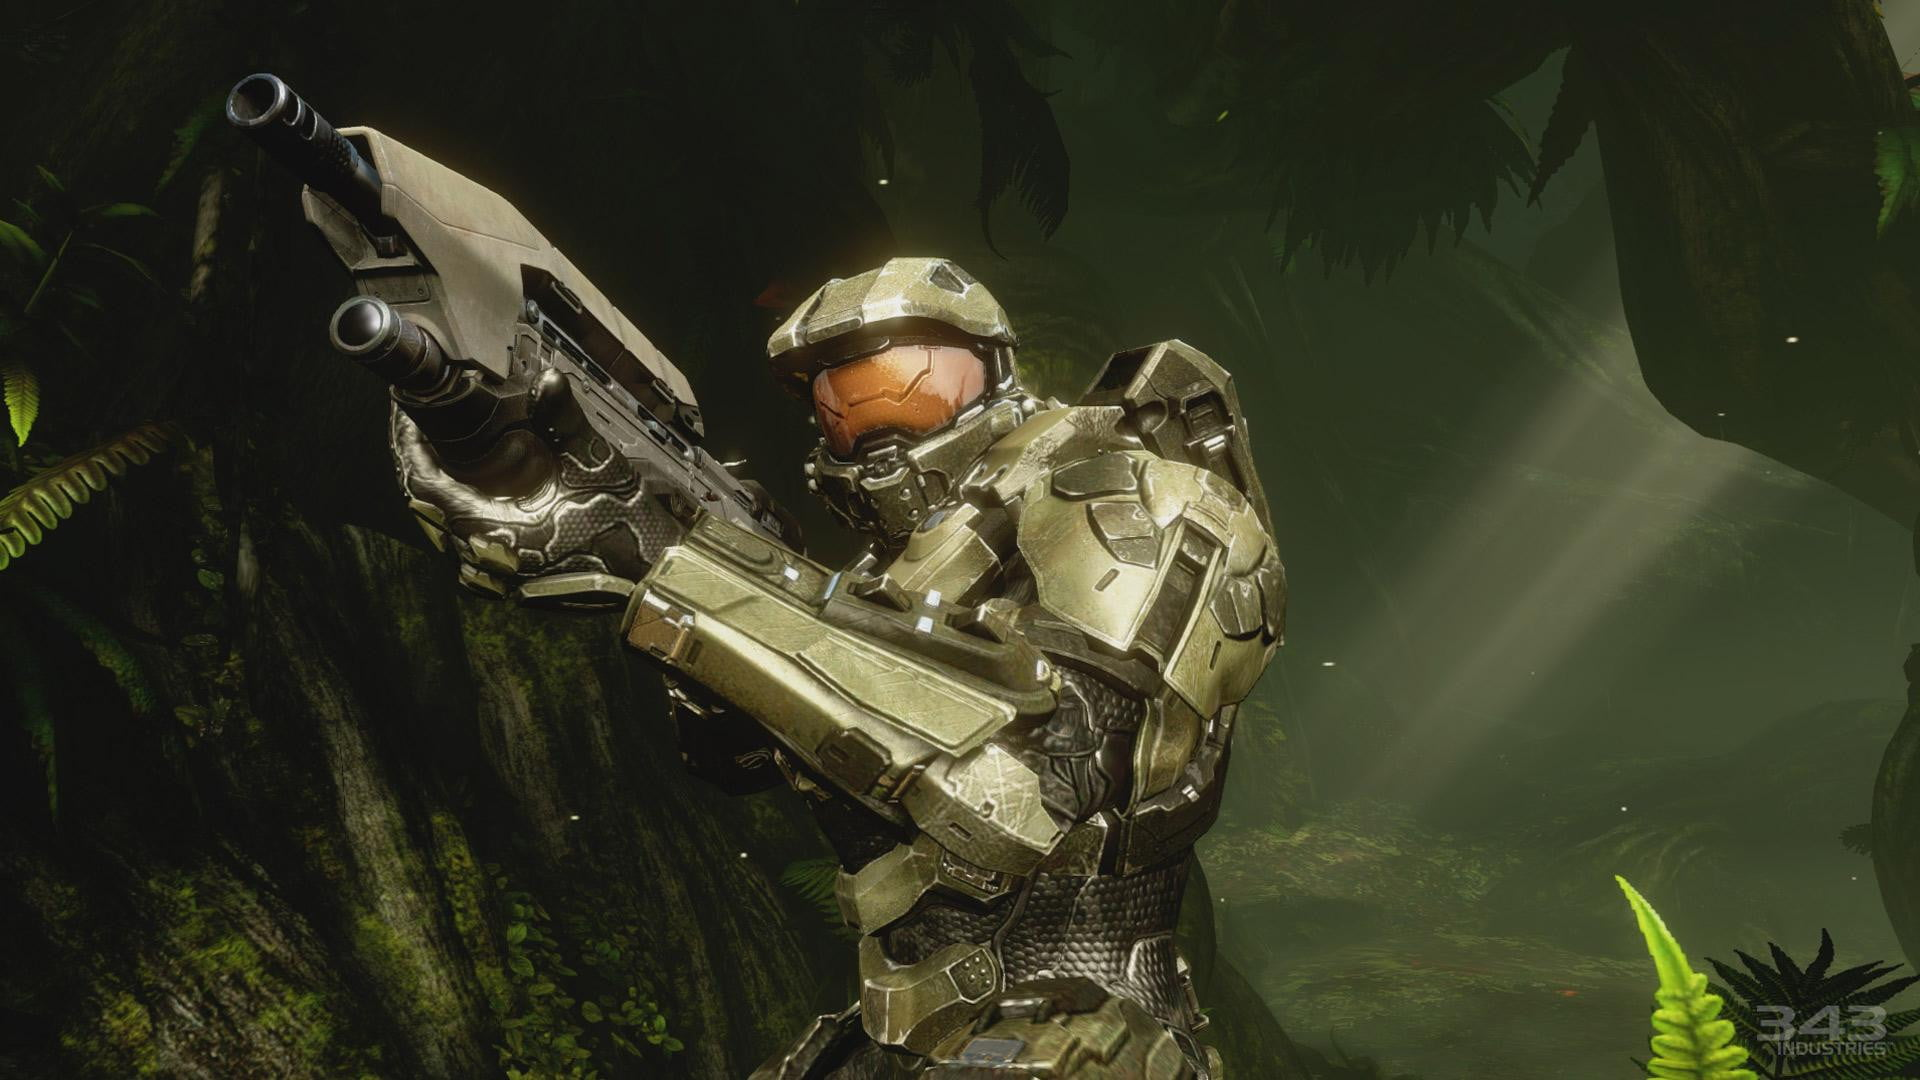 Halo: The Master Chief Collection review | Digital Trends